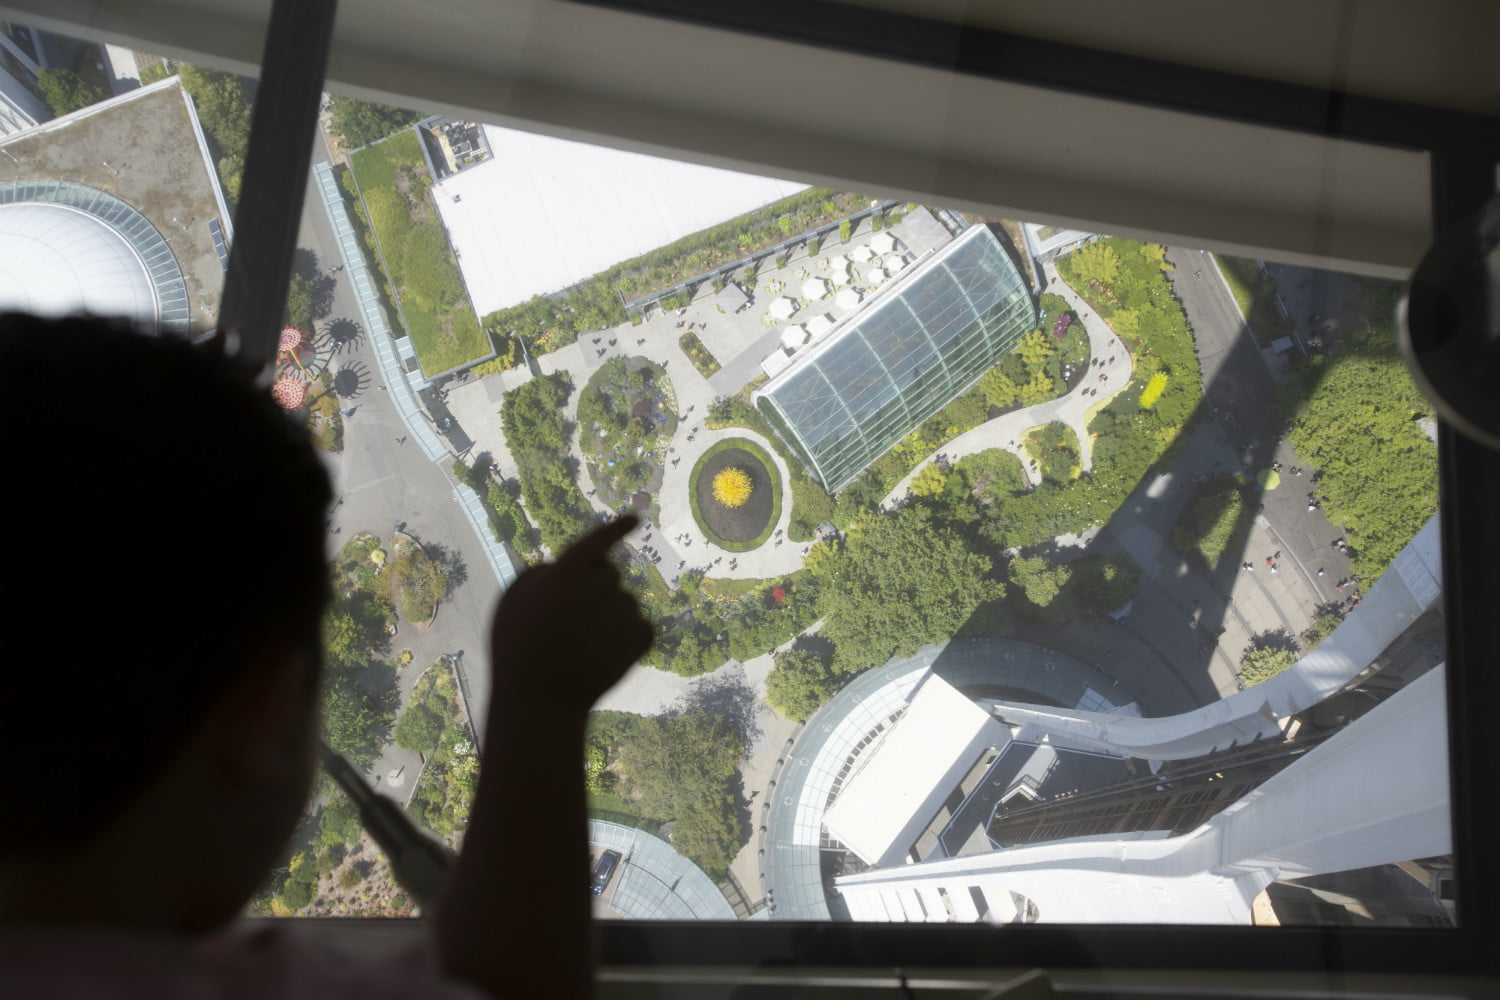 seattle space needle now has a revolving glass floor 6